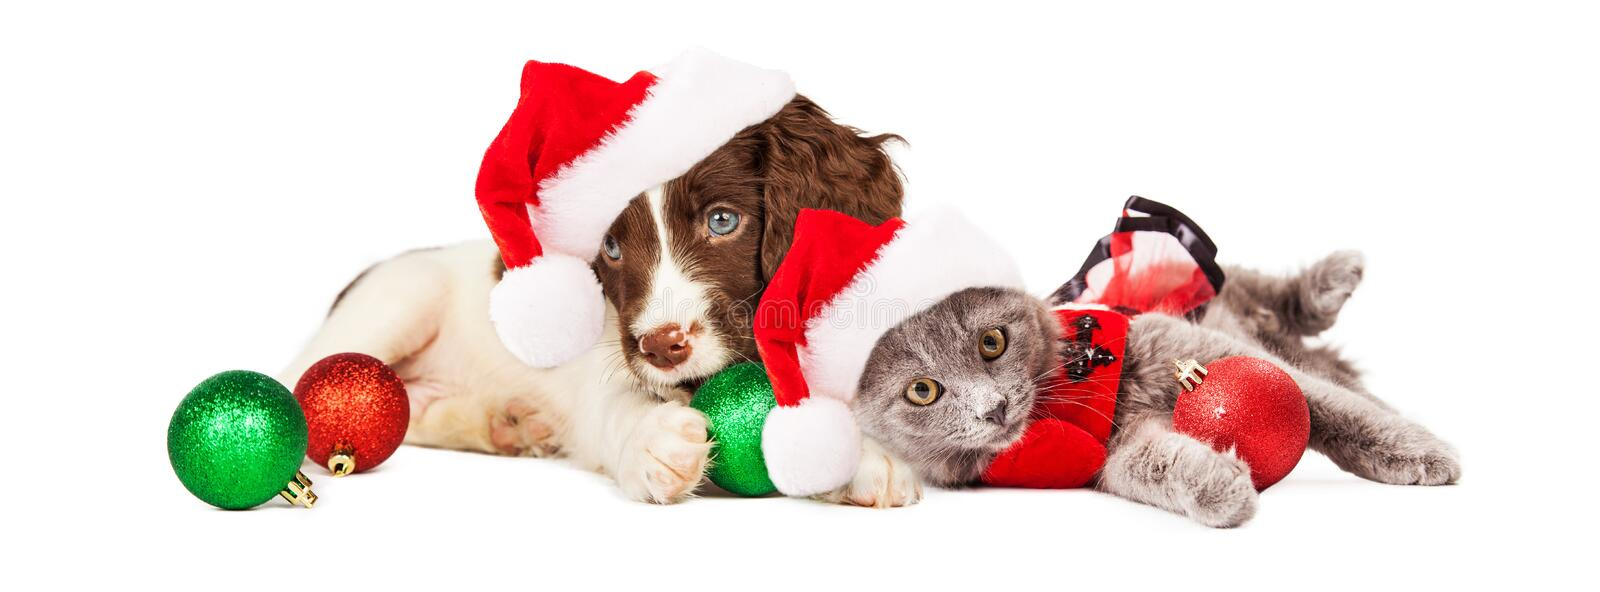 Welpe und Kitten Laying With Christmas Ornaments stockfotos